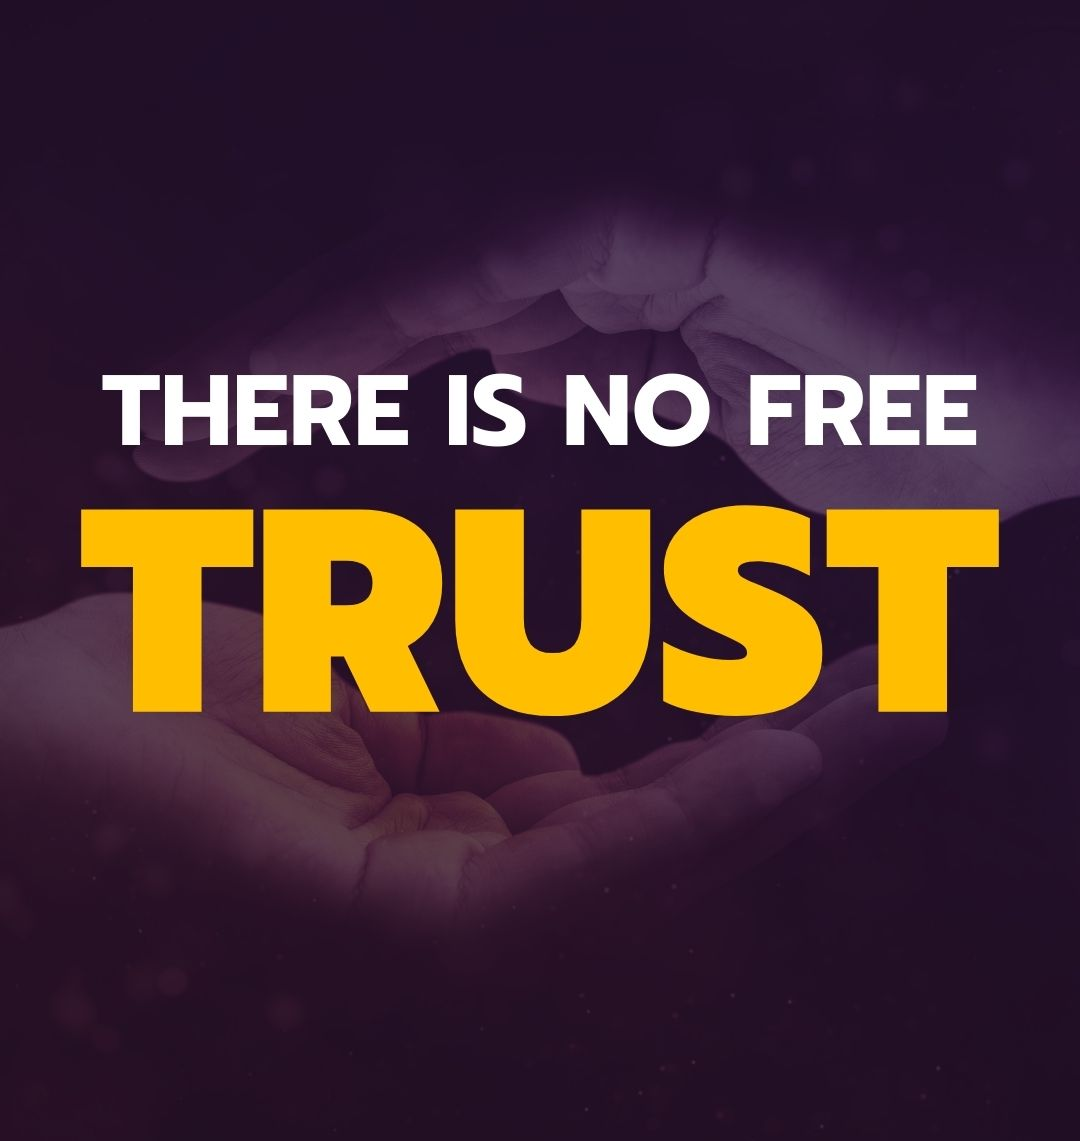 there is no free trust